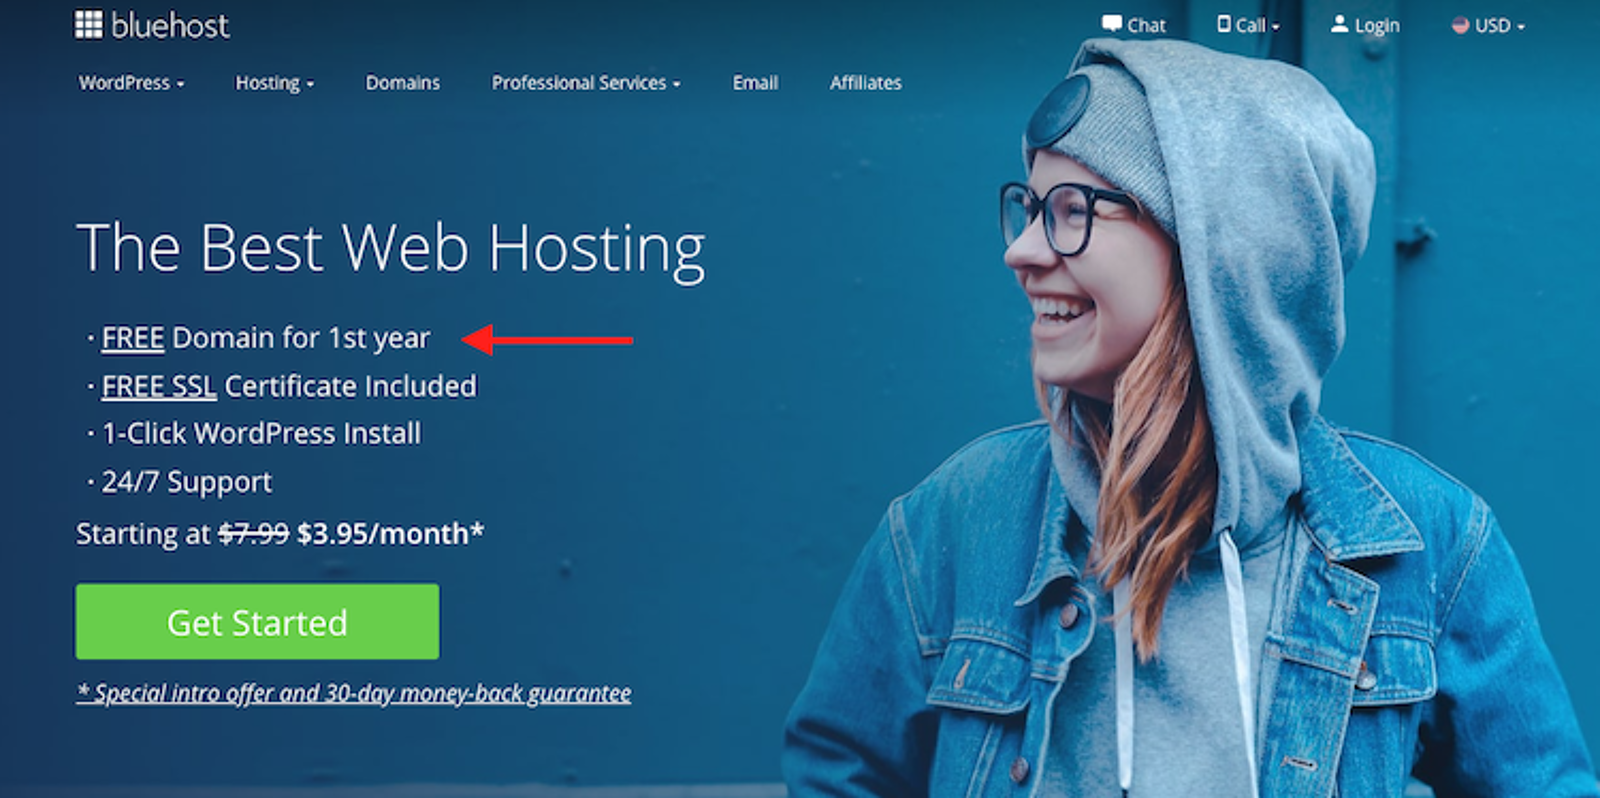 Bluehost.com landing page